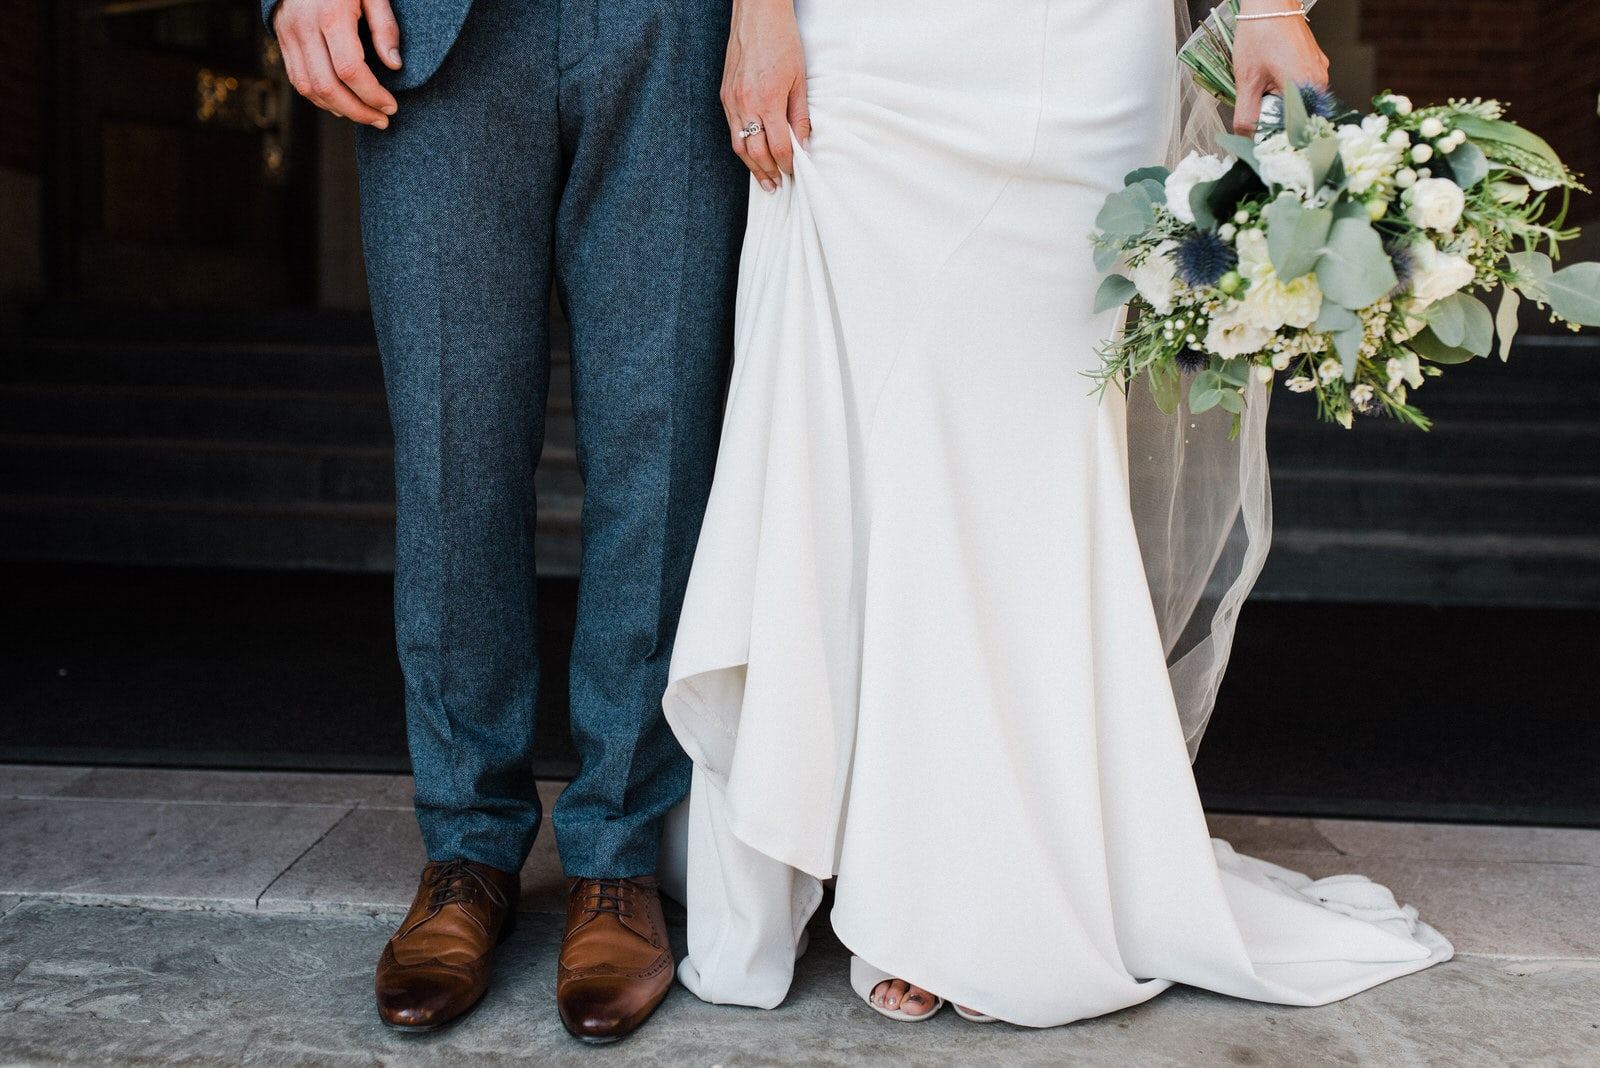 Close up of bride and groom legs